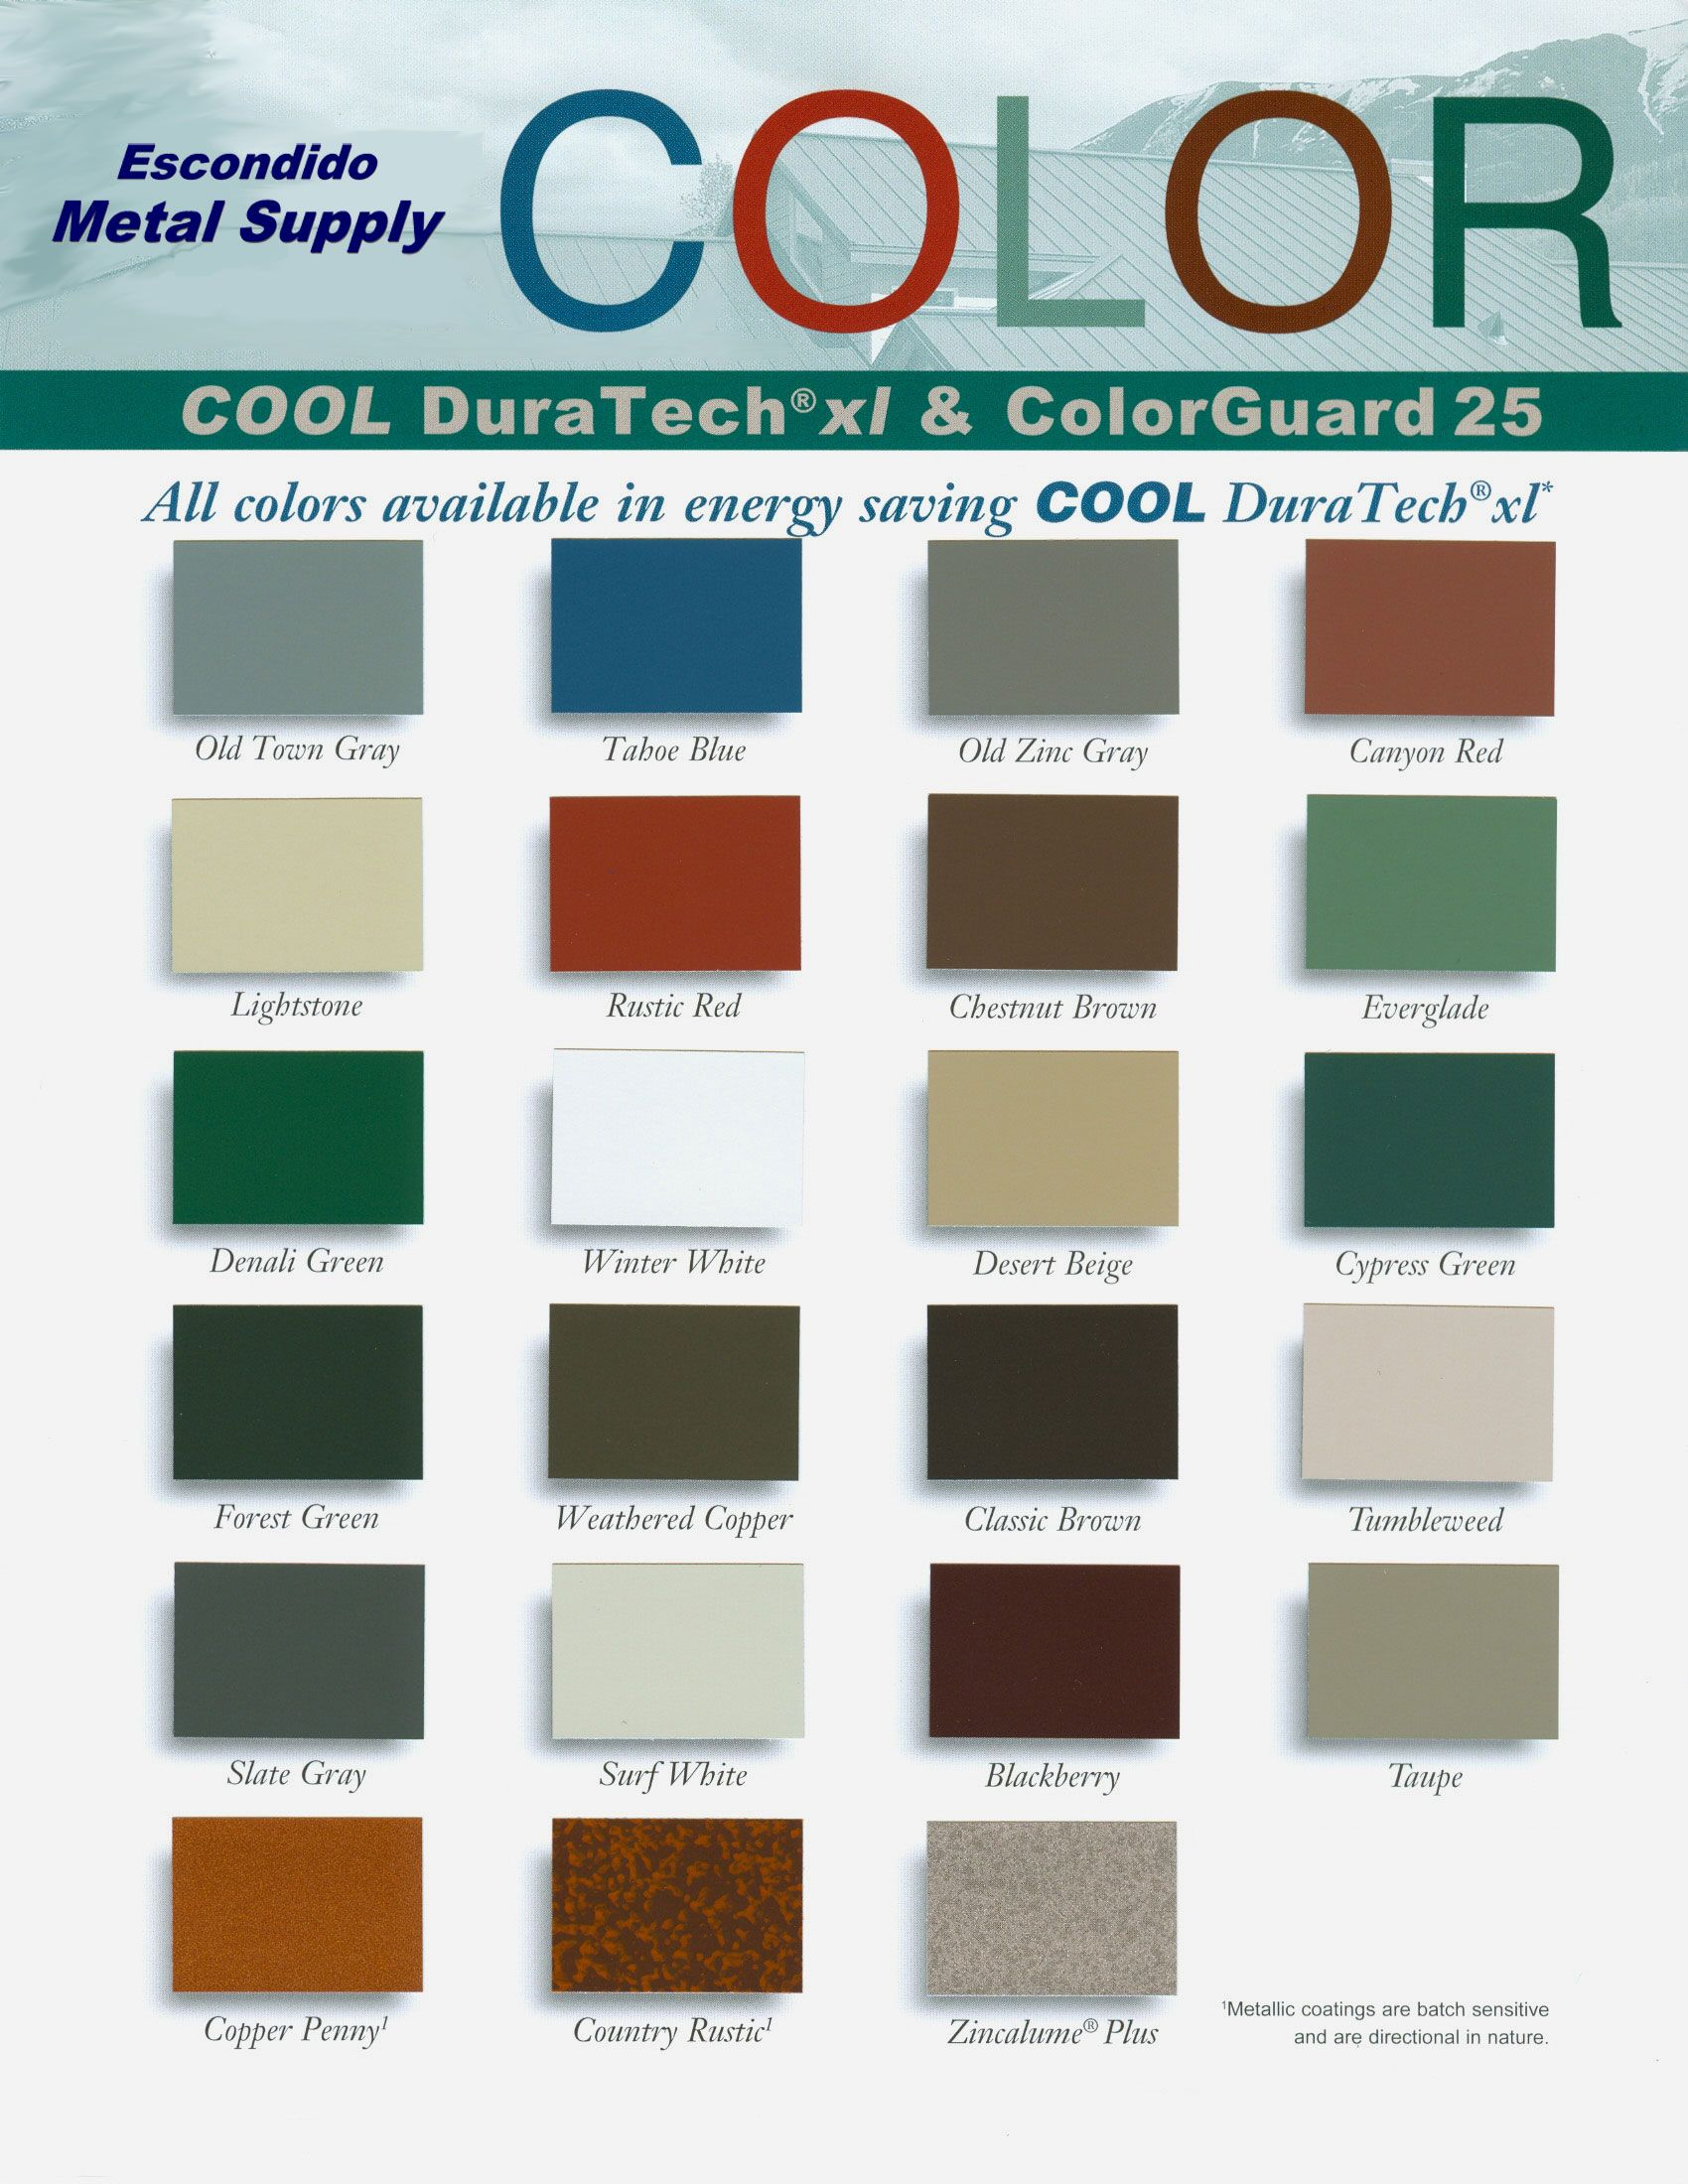 Metal roof colors cell phone accessories pinterest for Roof colors